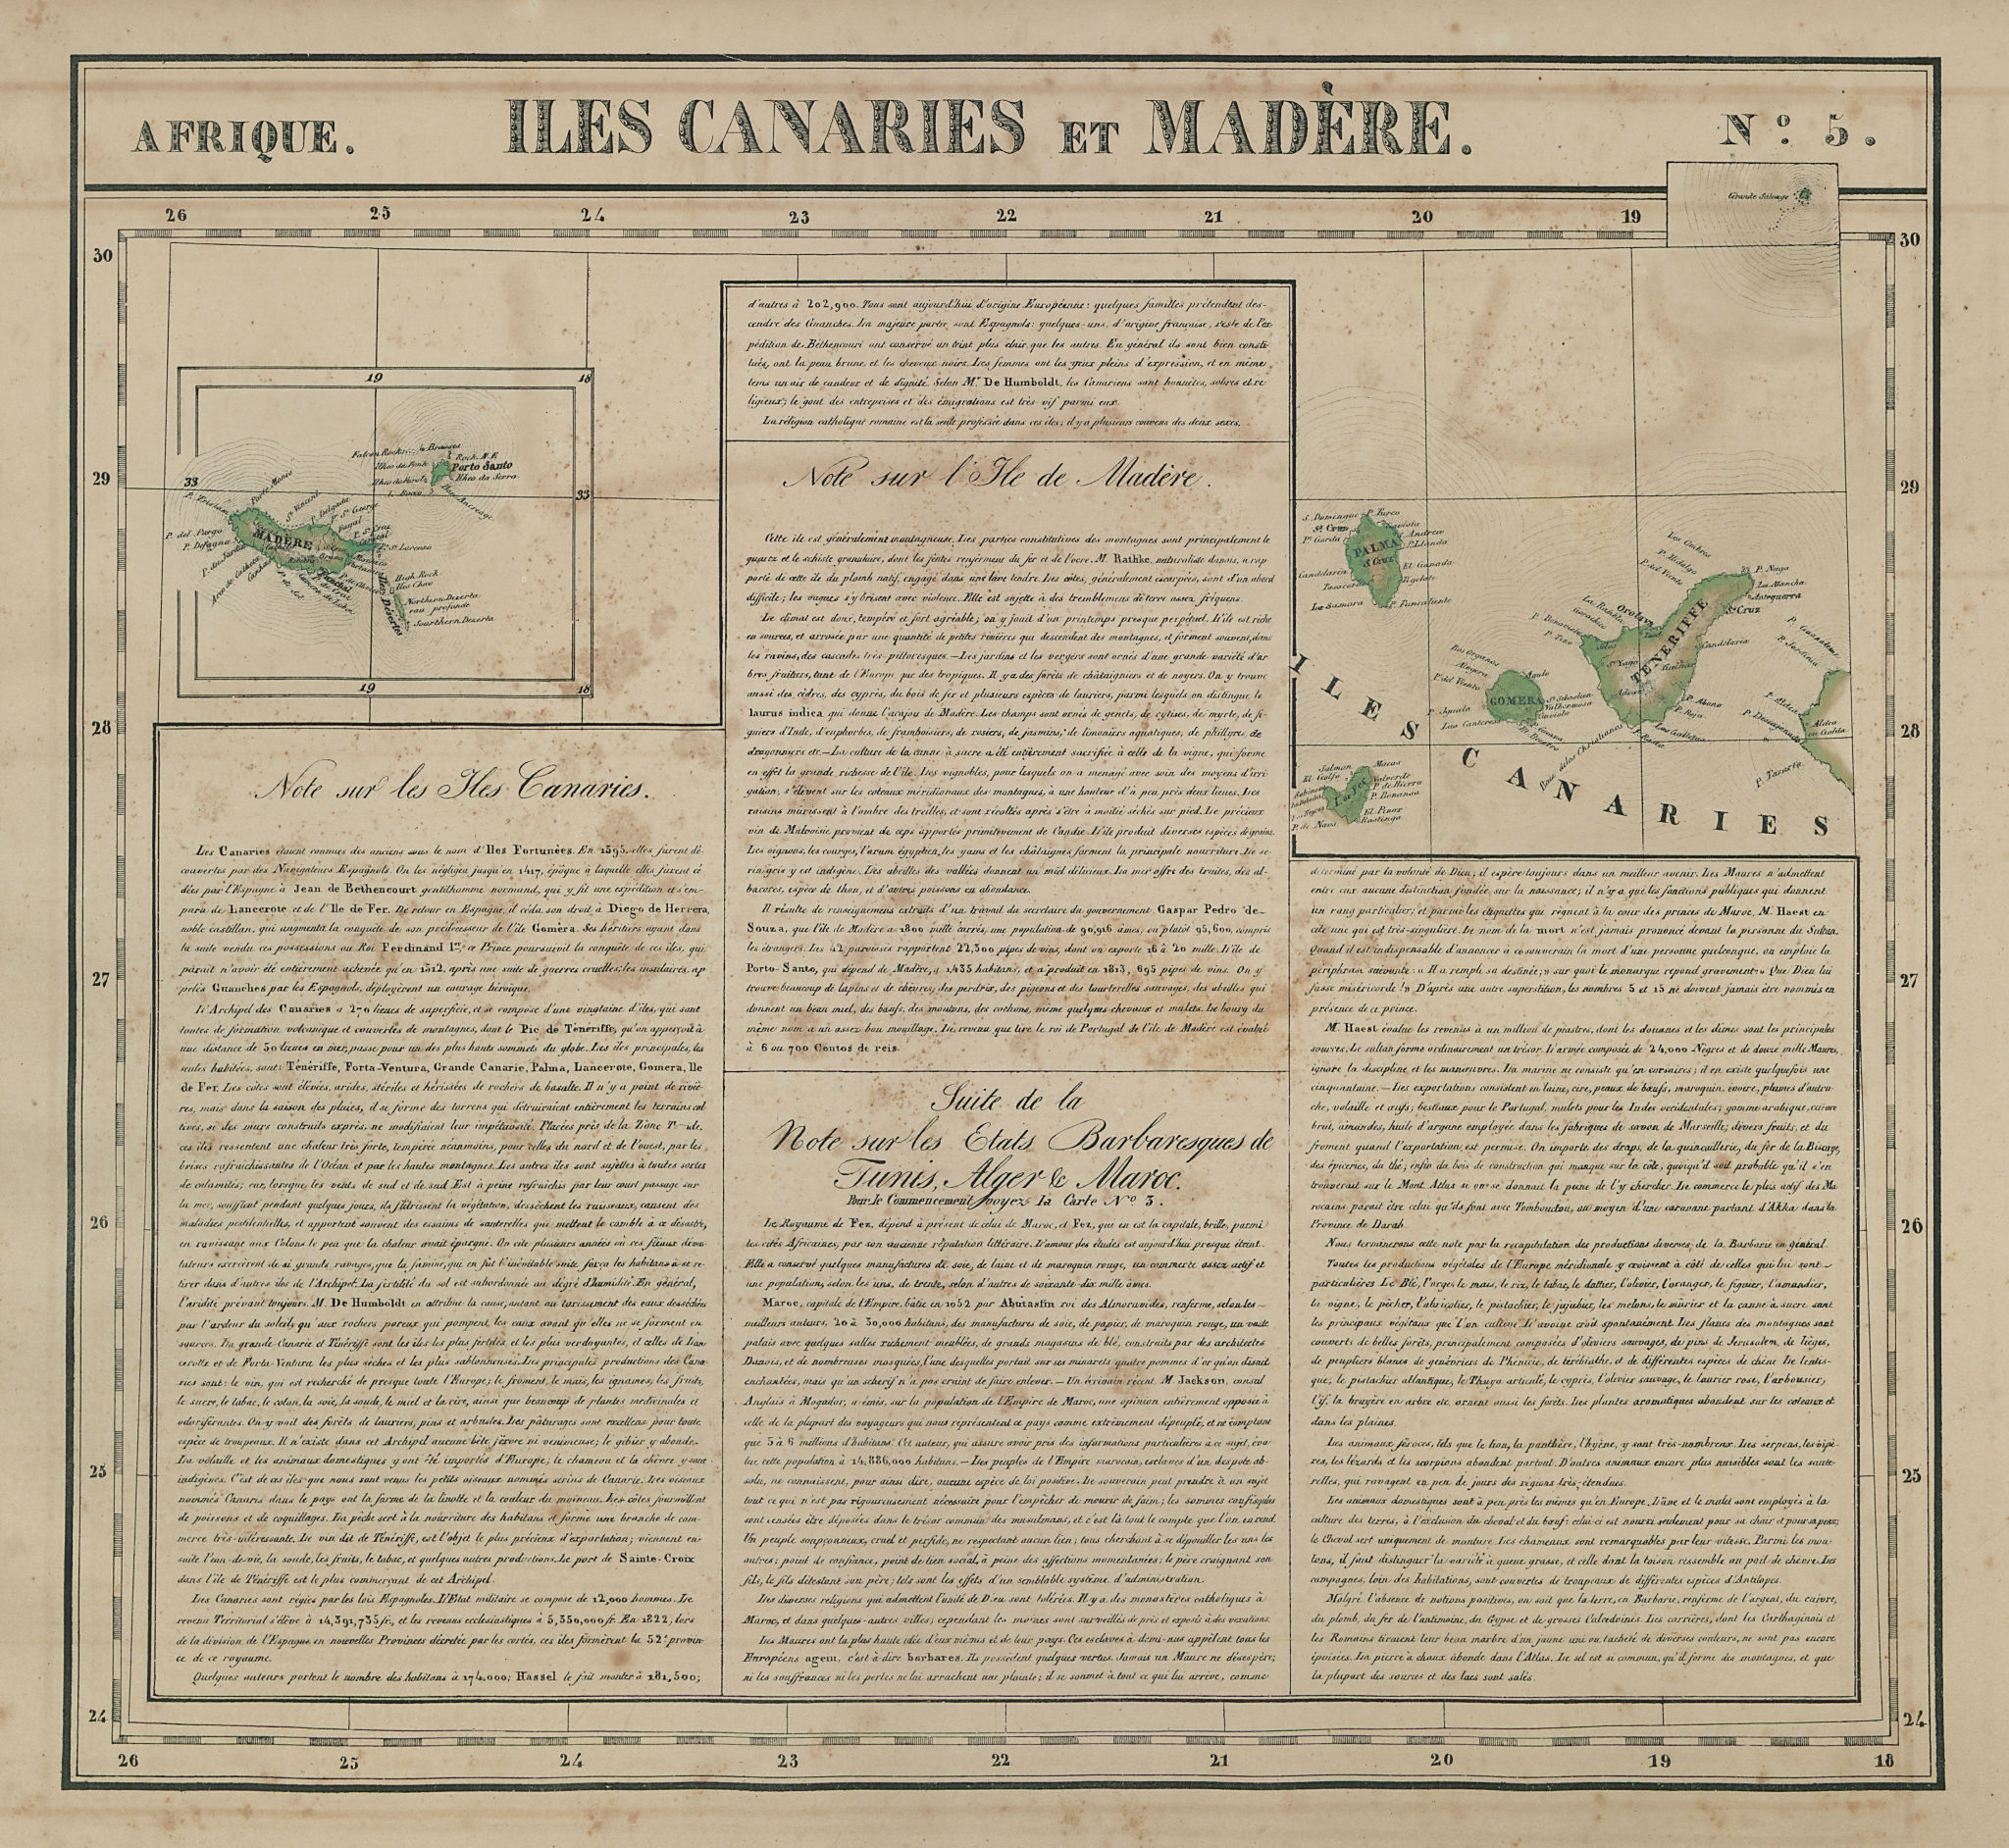 Afrique. Iles Canaries et Madère #5 Canary Islands Madeira VANDERMAELEN 1827 map